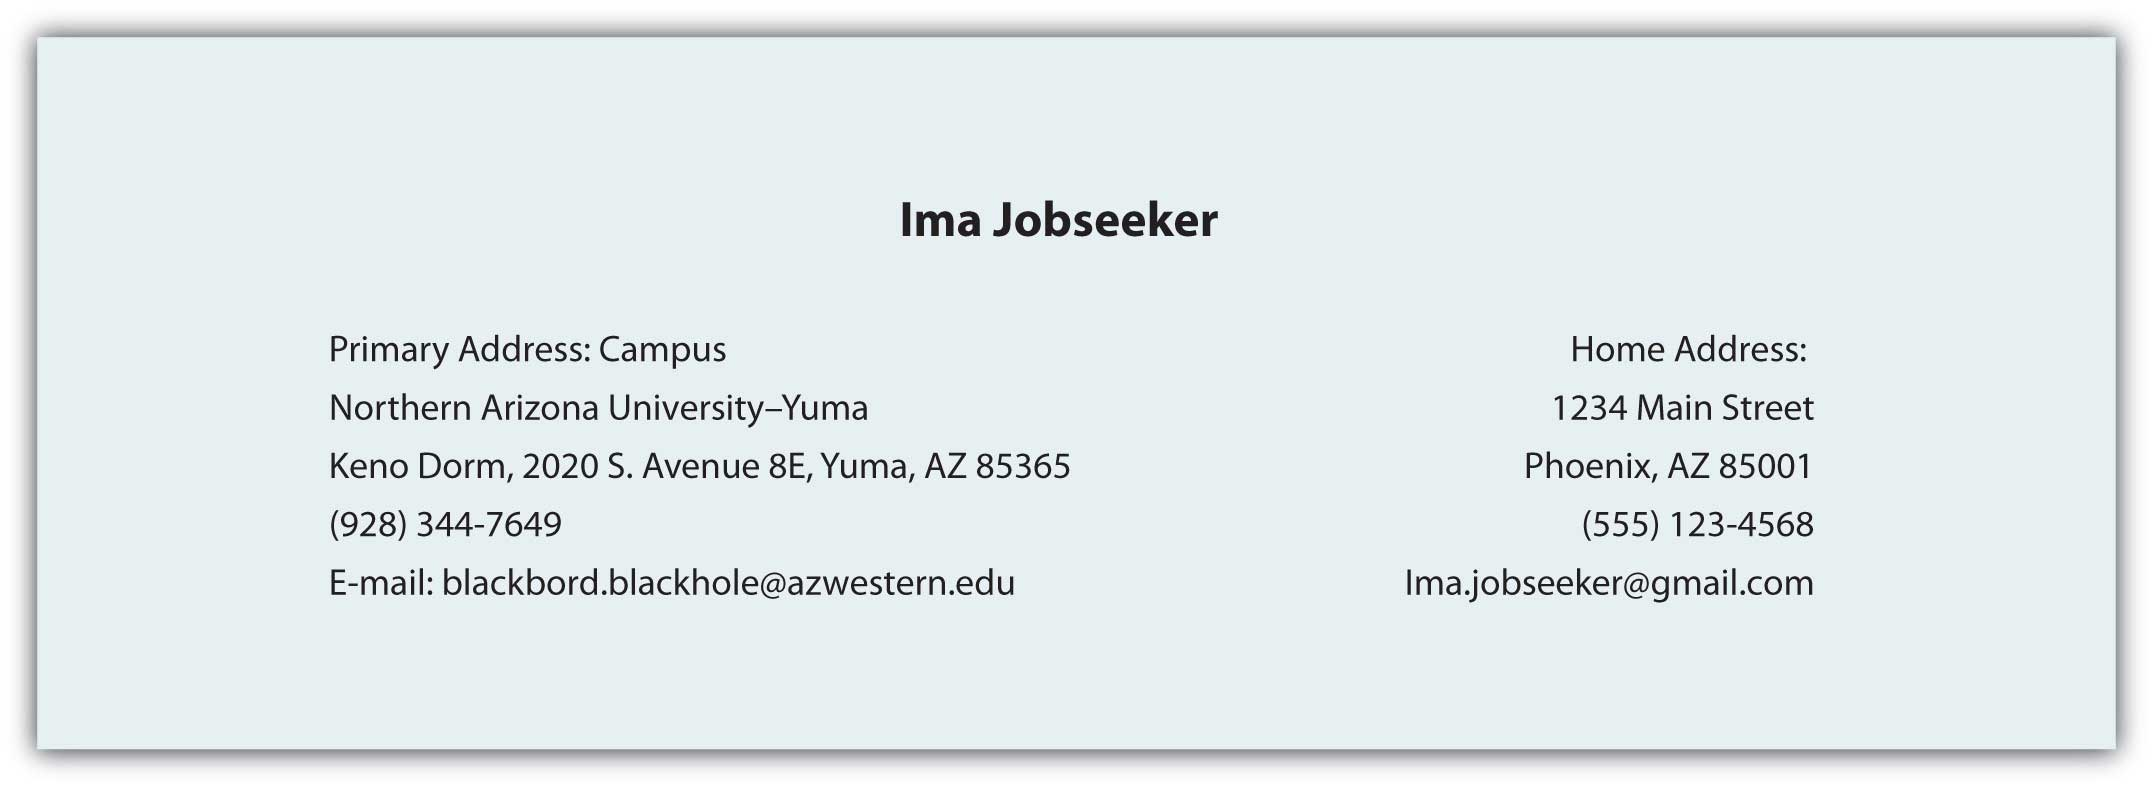 Sample Contact Information